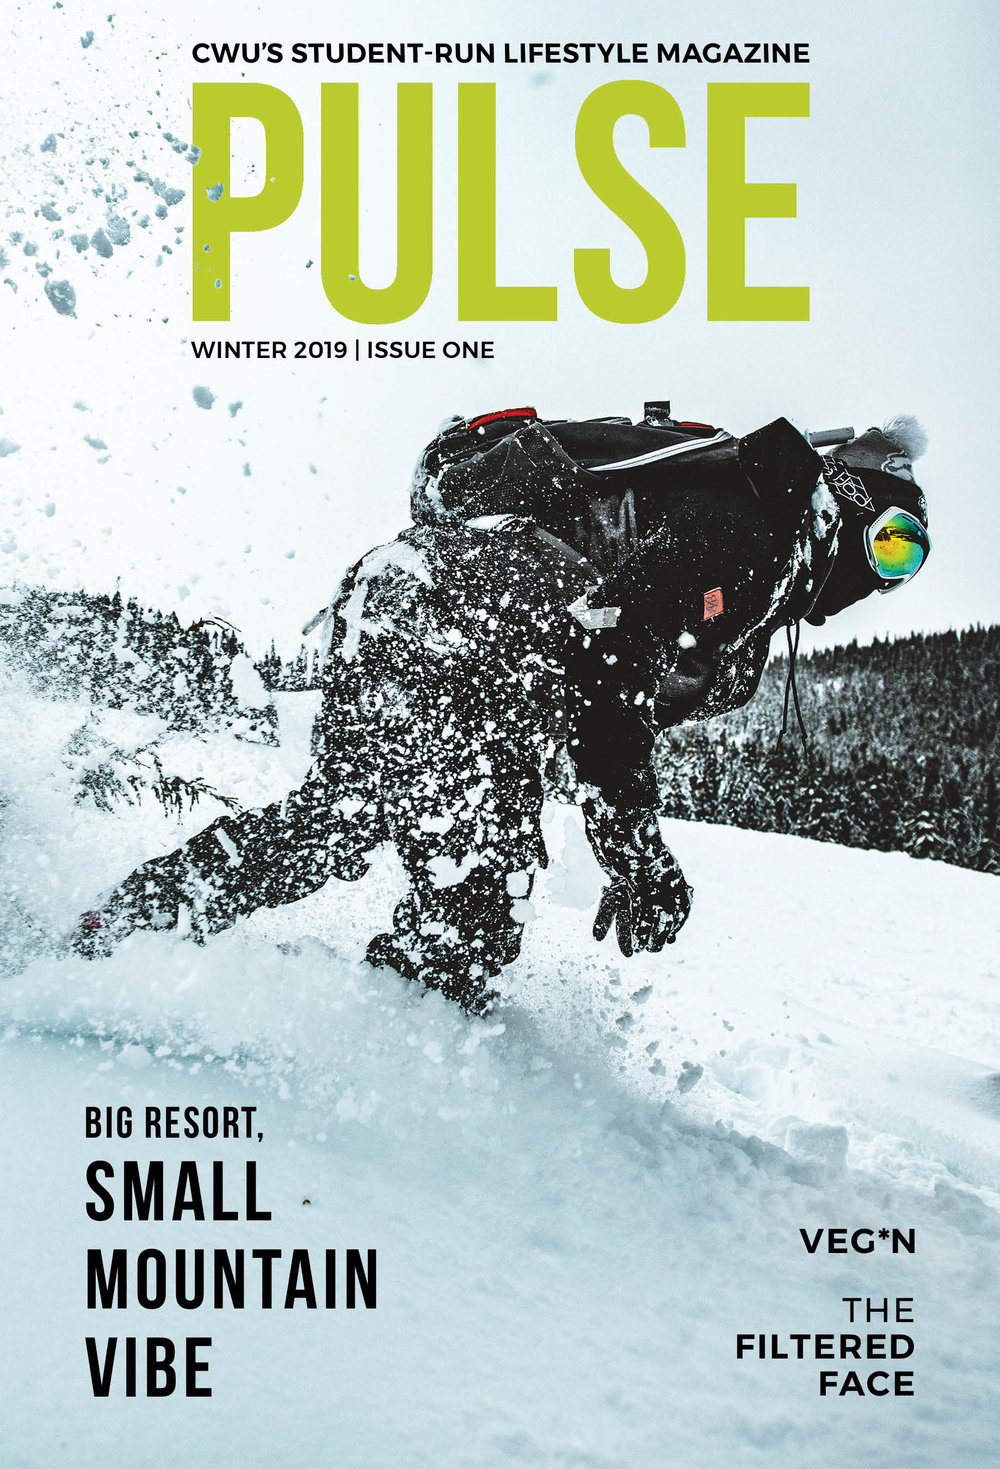 PULSE_2018_Winter_IssueOne_Cover.jpg